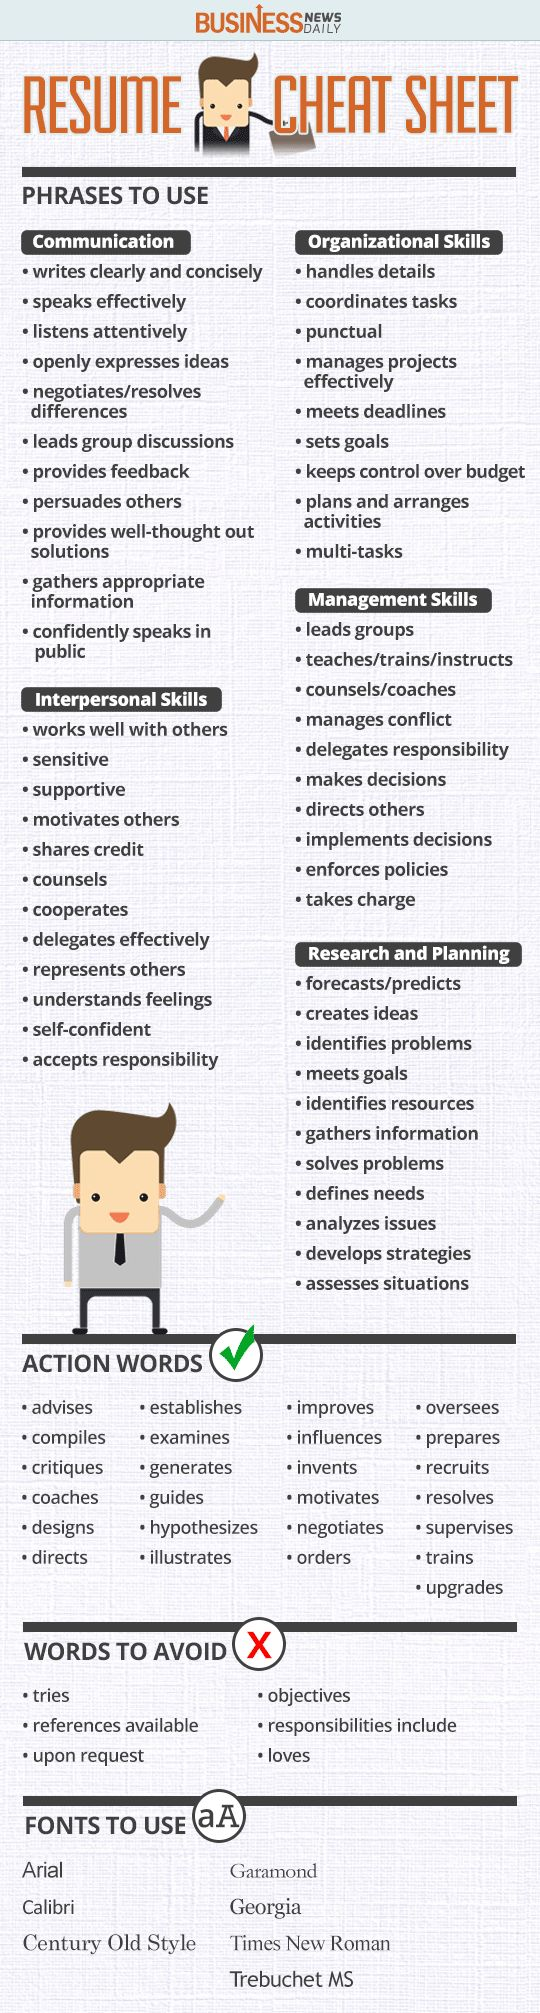 Opposenewapstandardsus  Prepossessing  Ideas About Resume On Pinterest  Cv Format Resume Cv And  With Remarkable Resume Cheat Sheet Infographic Andrews Almost Done With A Complete Unit On Employment Which With Charming Equity Research Resume Also College Golf Resume In Addition Resume For Teenager With No Work Experience And What Is An Objective For A Resume As Well As My Resume Sucks Additionally Simple Resume Builder From Pinterestcom With Opposenewapstandardsus  Remarkable  Ideas About Resume On Pinterest  Cv Format Resume Cv And  With Charming Resume Cheat Sheet Infographic Andrews Almost Done With A Complete Unit On Employment Which And Prepossessing Equity Research Resume Also College Golf Resume In Addition Resume For Teenager With No Work Experience From Pinterestcom